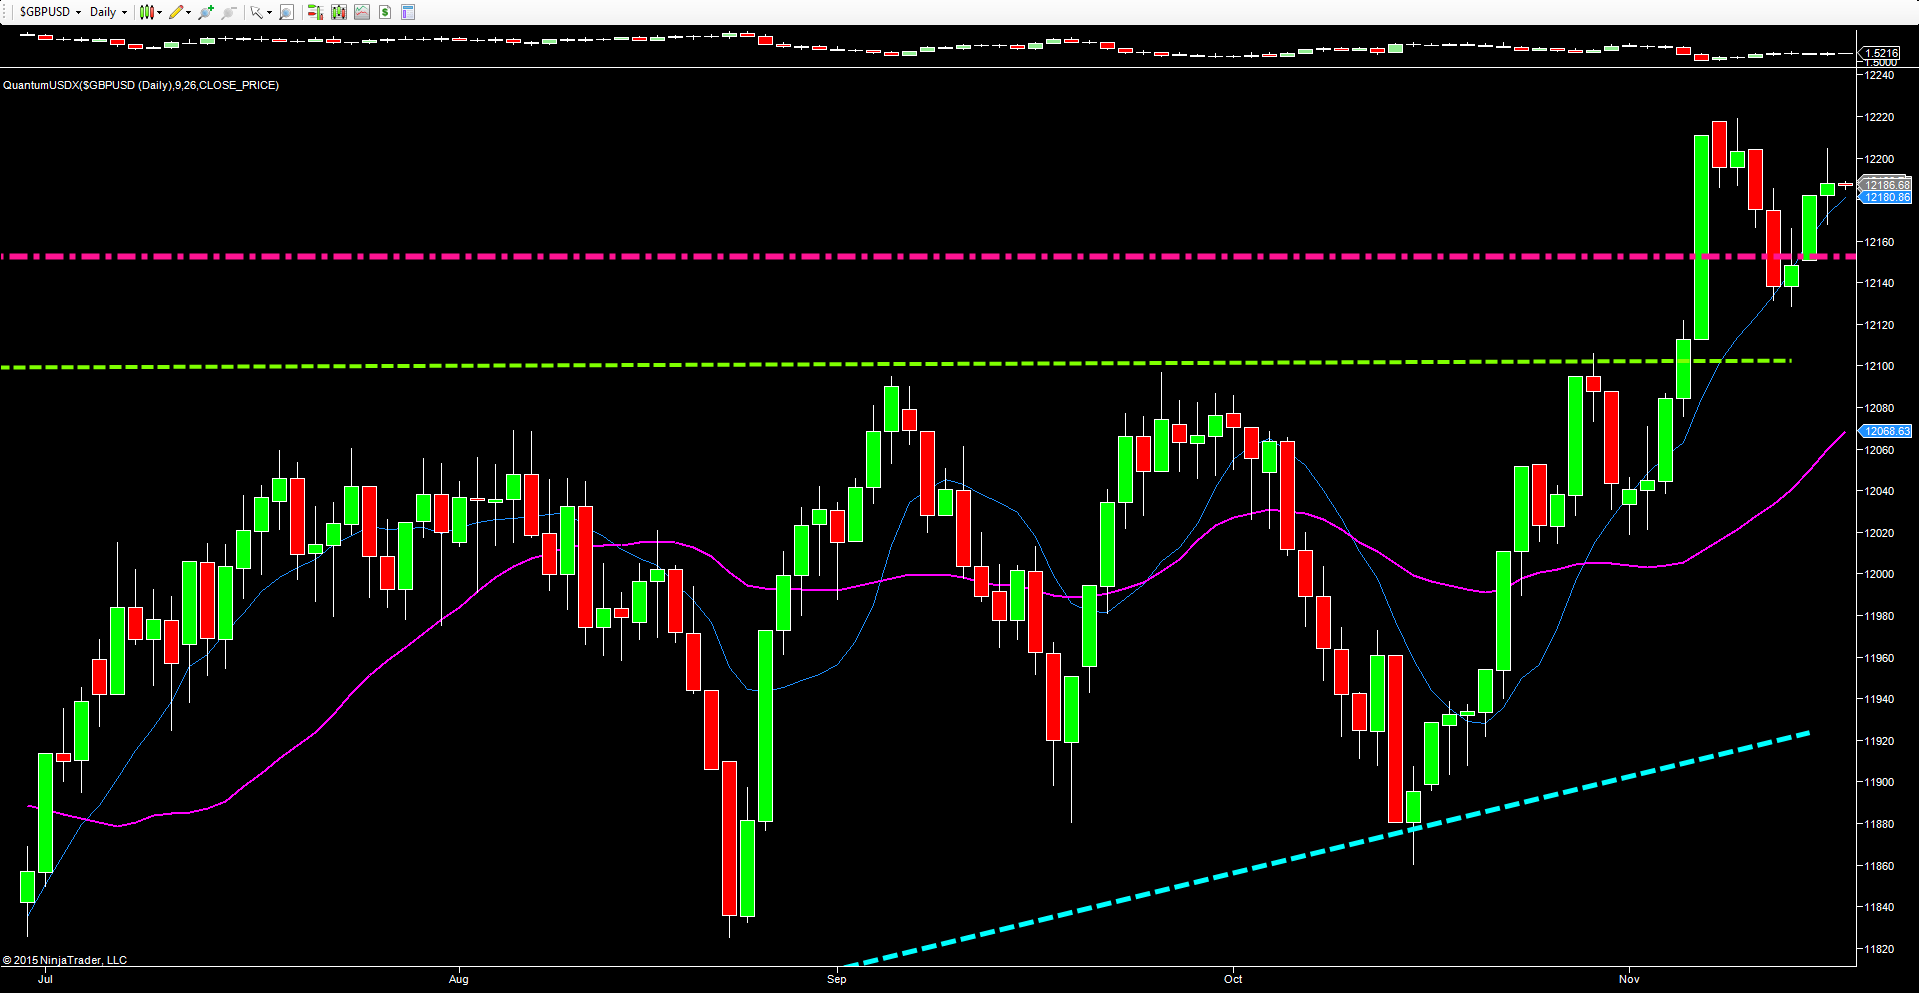 USDX_daily_chart